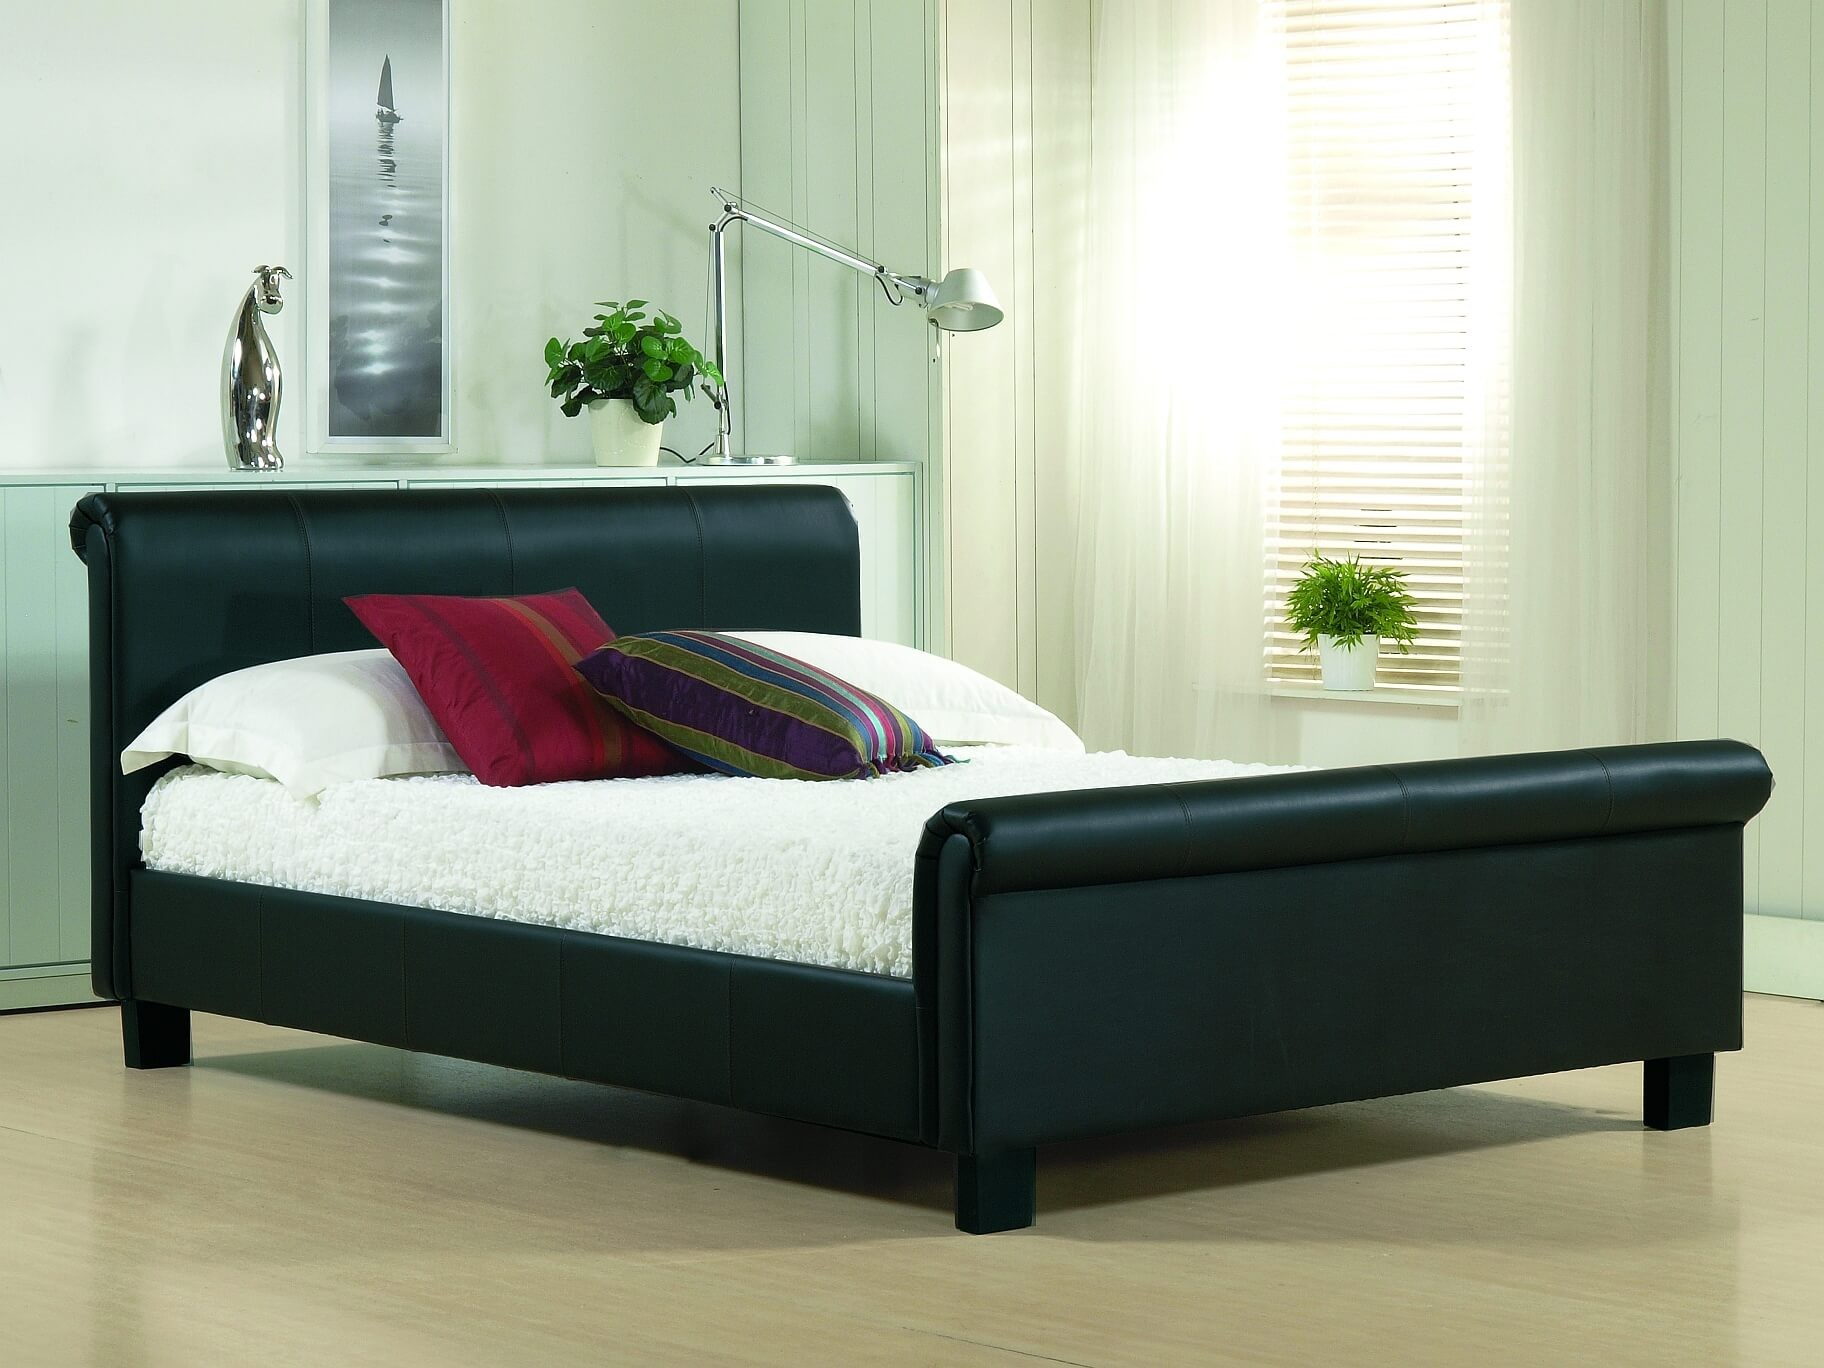 https://www.firstfurniture.co.uk/pub/media/catalog/product/a/u/aurora_black_1_2.jpg